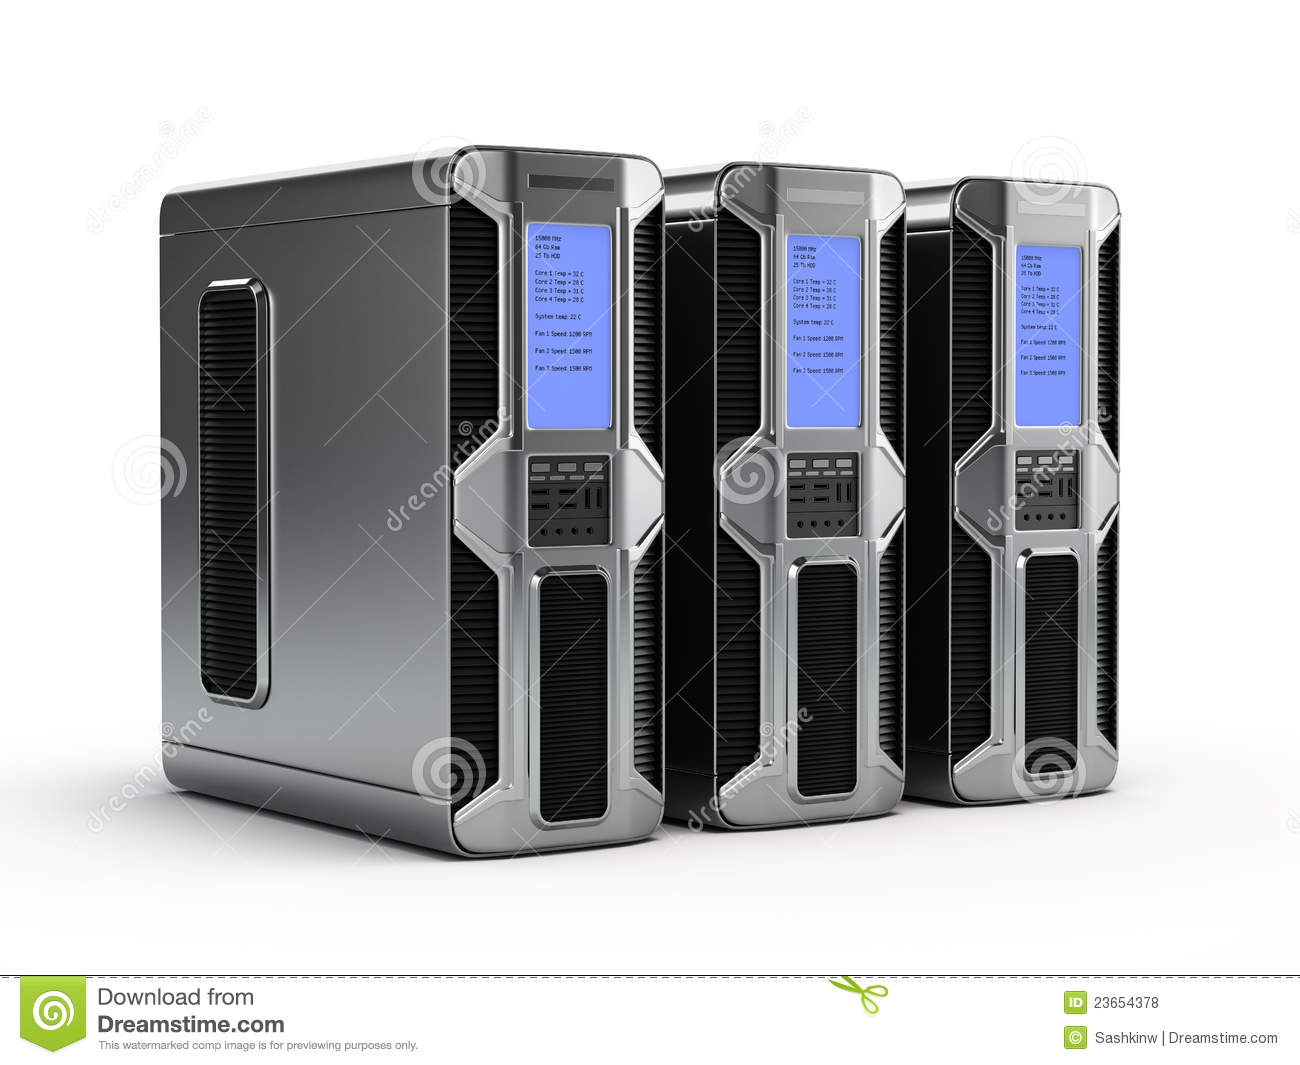 Computer Servers Royalty Free Stock Photos - Image: 23654378